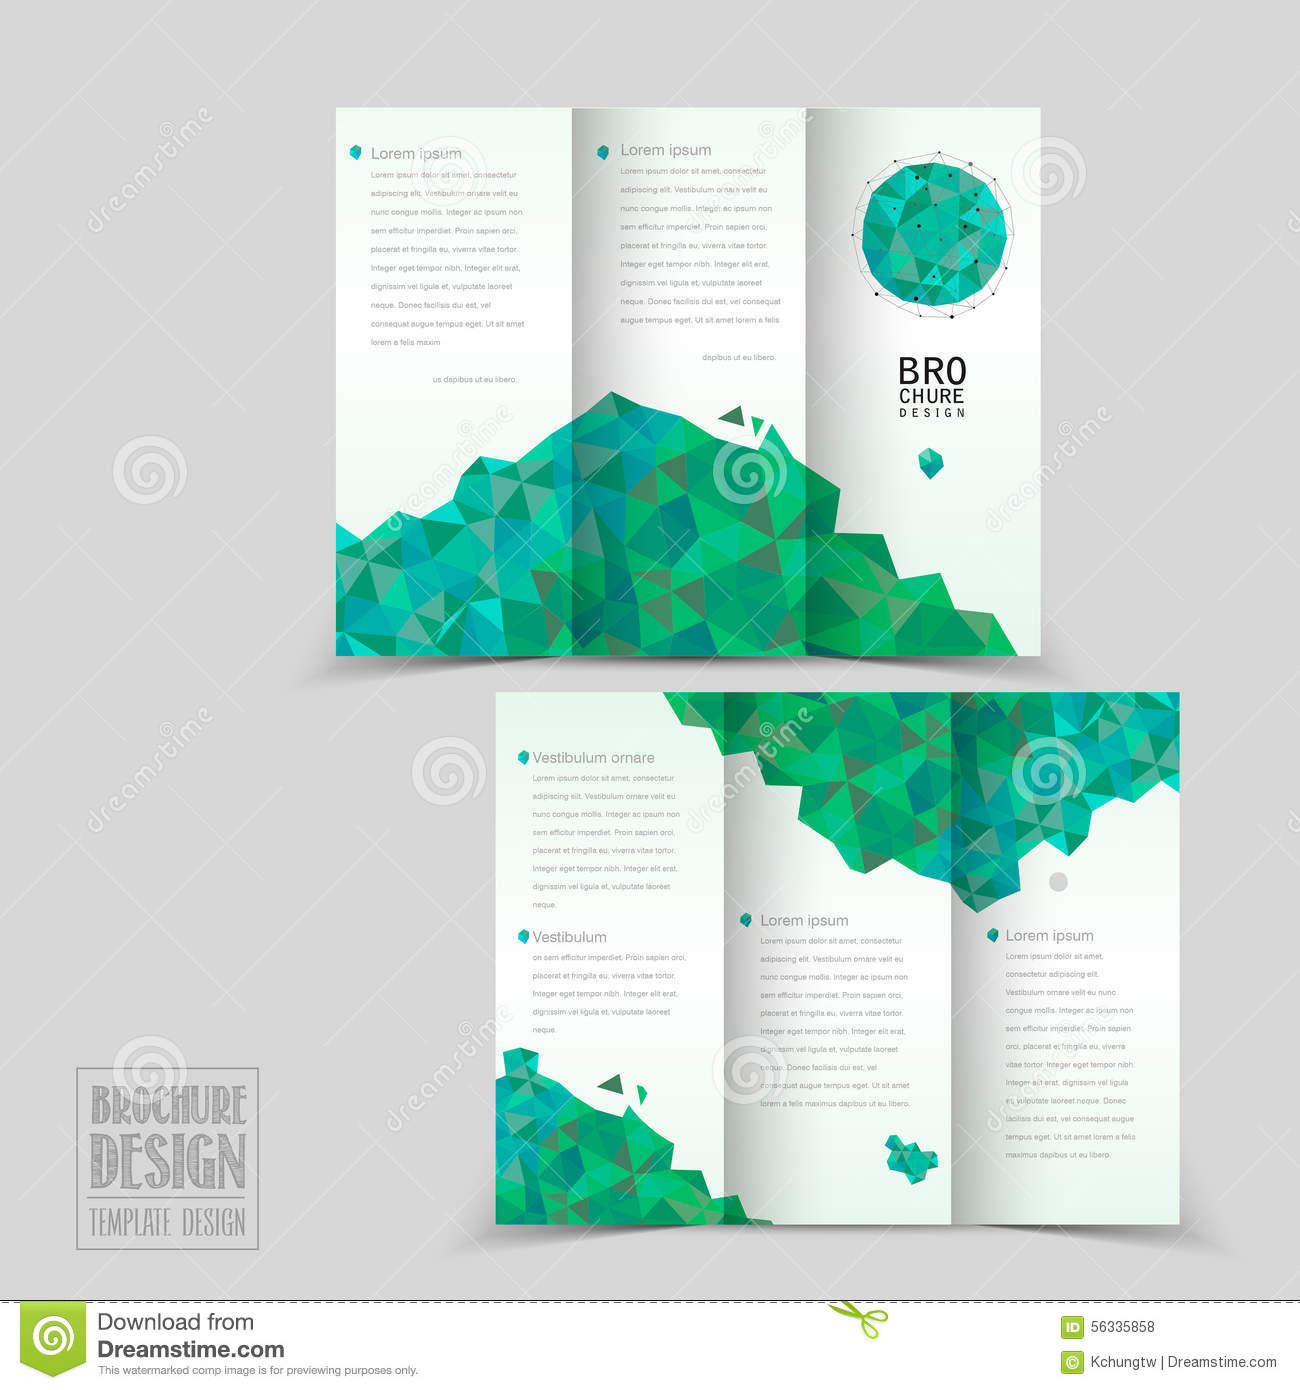 Simplicity tri fold brochure template design stock vector for Tri fold brochure design templates